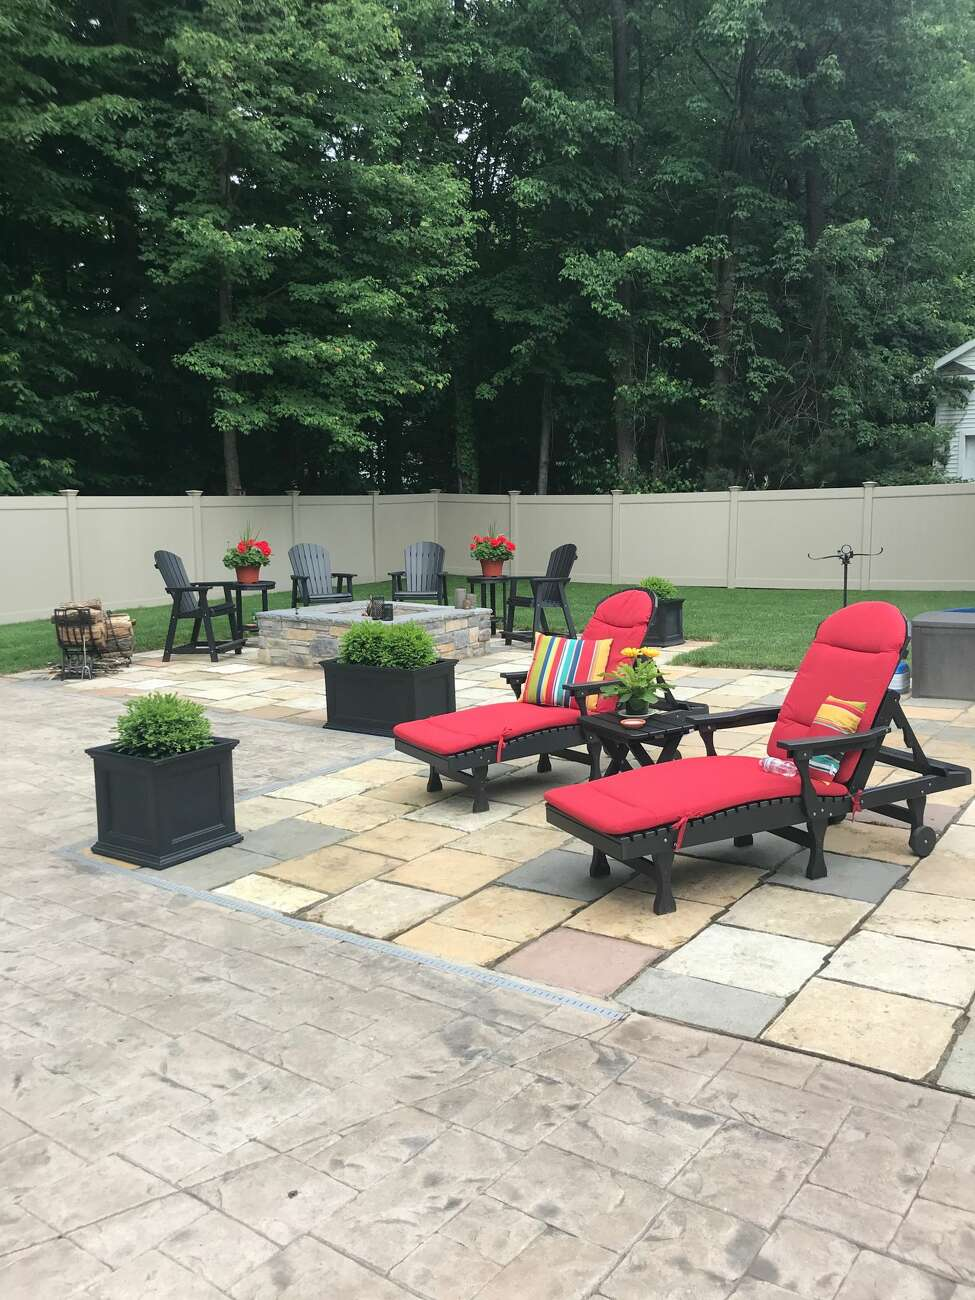 1. My favorite place is relaxing in my backyard with my wife, Kelly. Read more about Frank Gallo here.